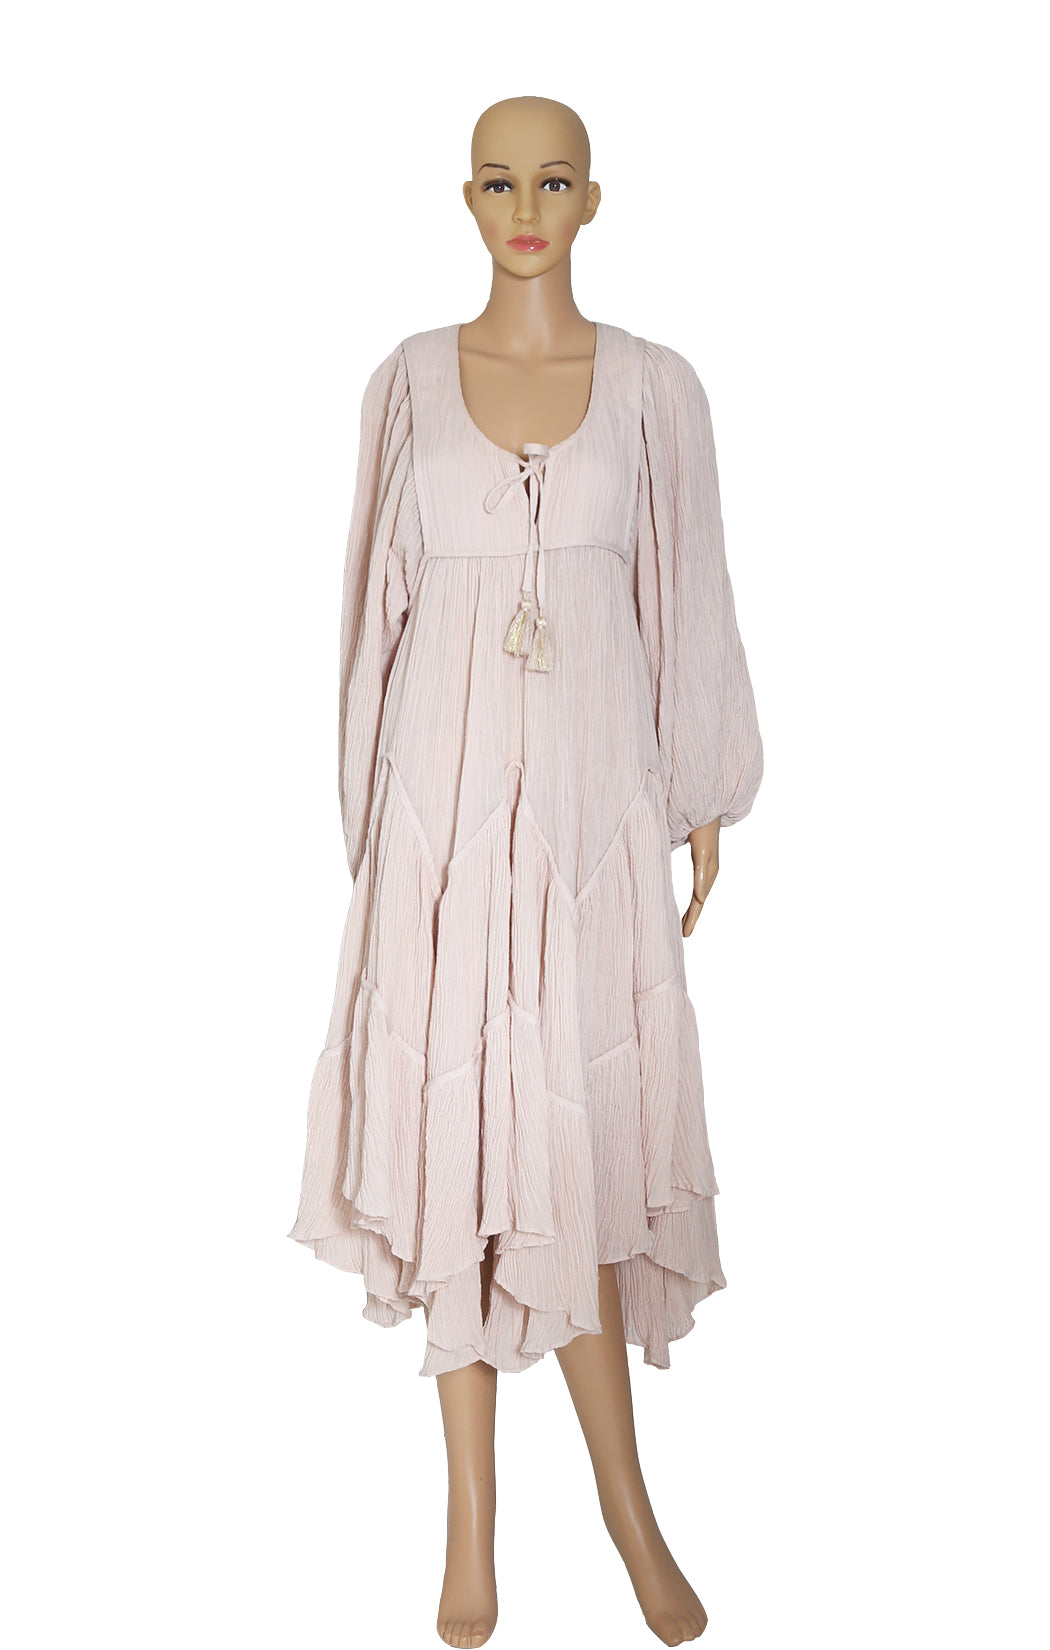 Front view ZIMMERMANN  Dress Size: 2 (comparable to US 8)